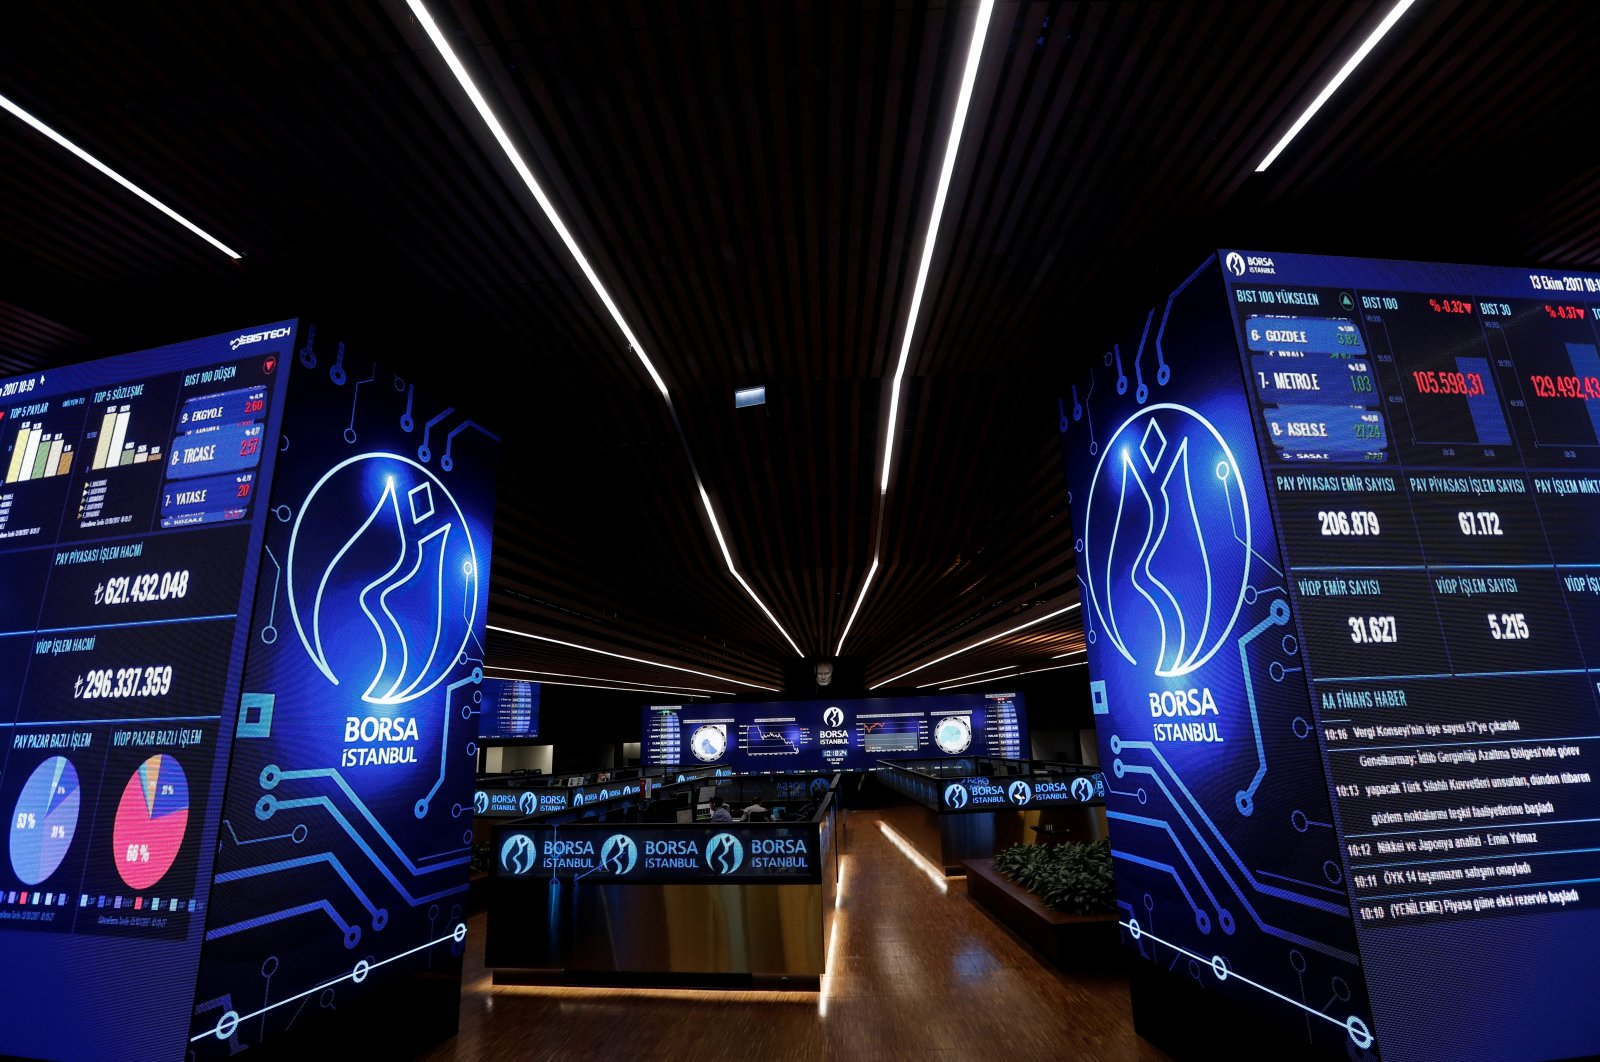 A general view shows the trading floor at the Borsa Istanbul in Istanbul, Turkey, Oct. 13, 2017. (Reuters Photo)